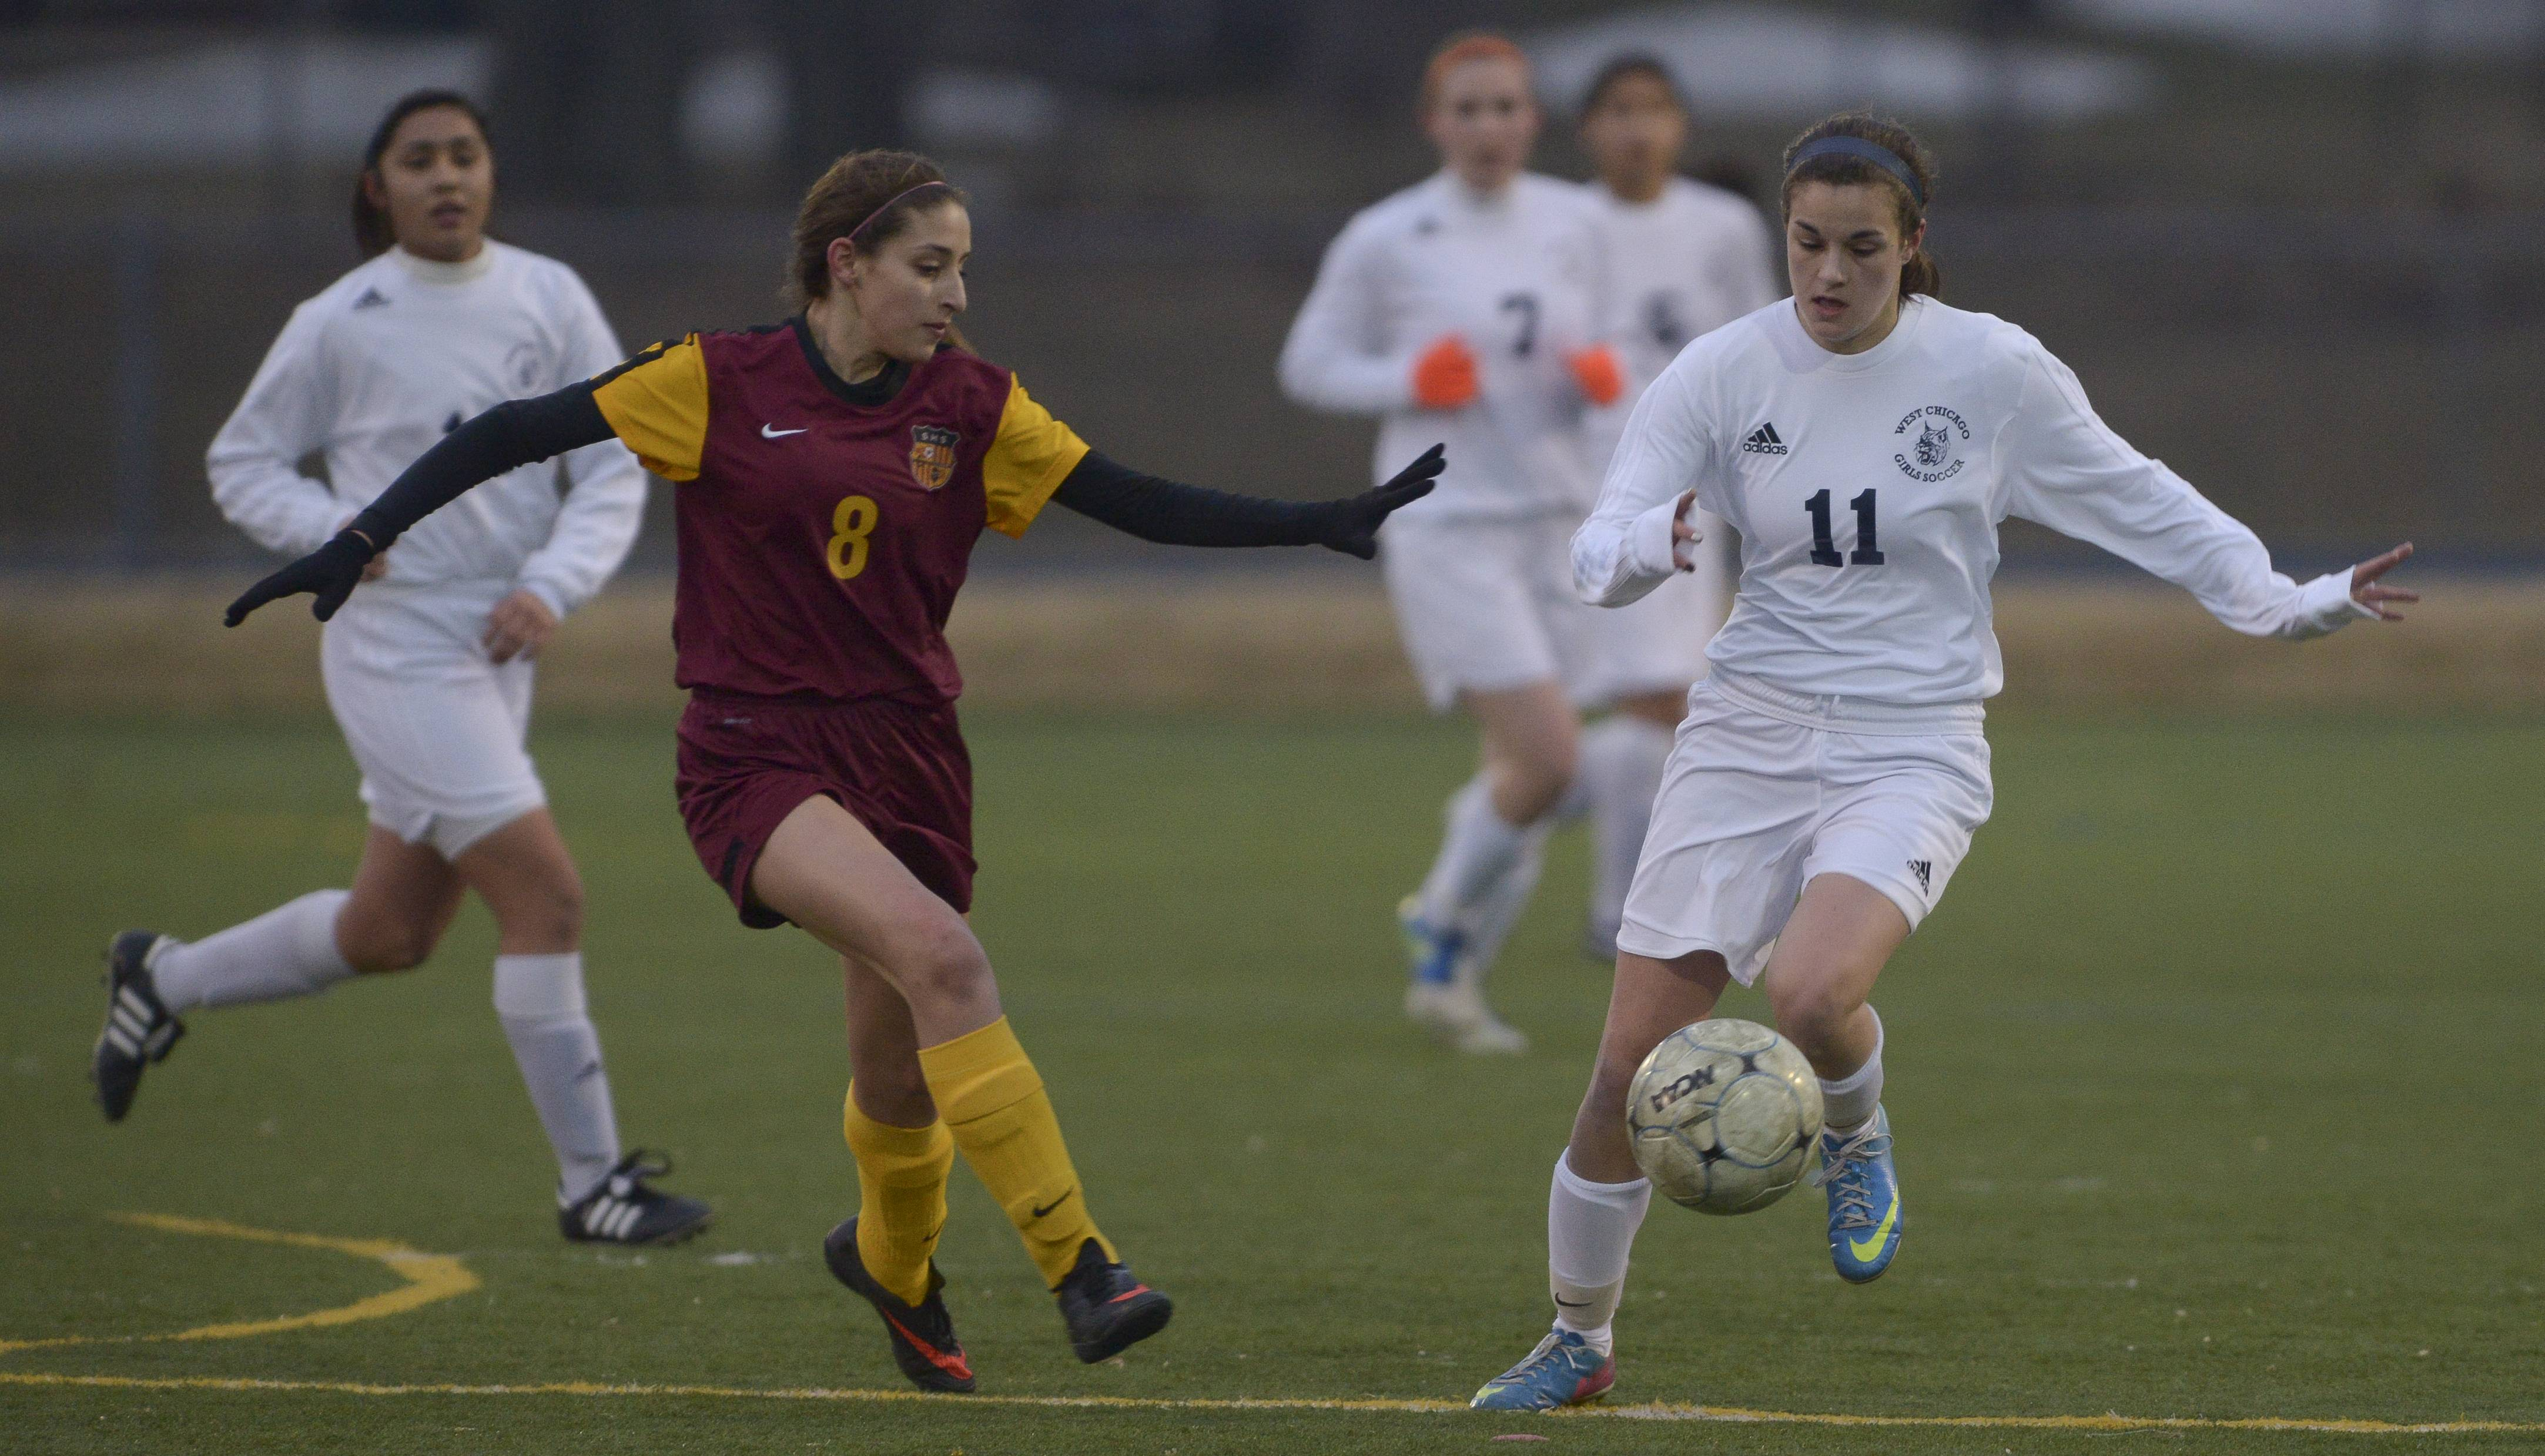 Mark Black/mblack@dailyherald.comSchaumburg's Julia Morales and West Chicago's Katie Reitz work for control of the ball during varsity girls soccer in West Chicago Wednesday night.